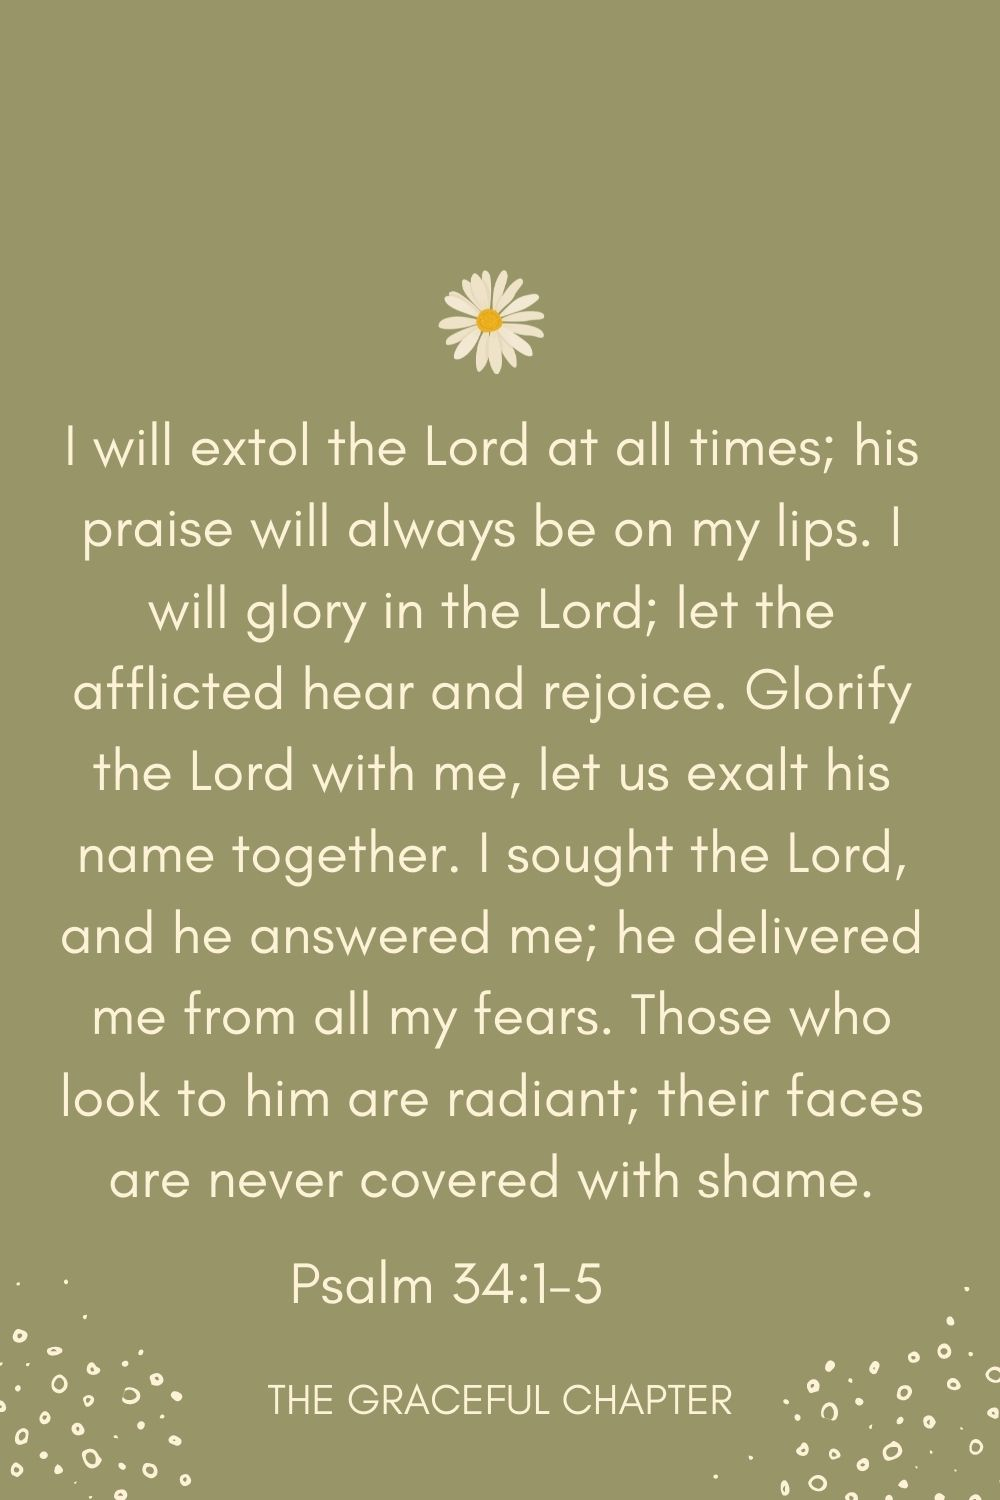 I will extol the Lord at all times; his praise will always be on my lips. I will glory in the Lord; let the afflicted hear and rejoice. Glorify the Lord with me, let us exalt his name together. I sought the Lord, and he answered me; he delivered me from all my fears. Those who look to him are radiant; their faces are never covered with shame. Psalm 34:1-5